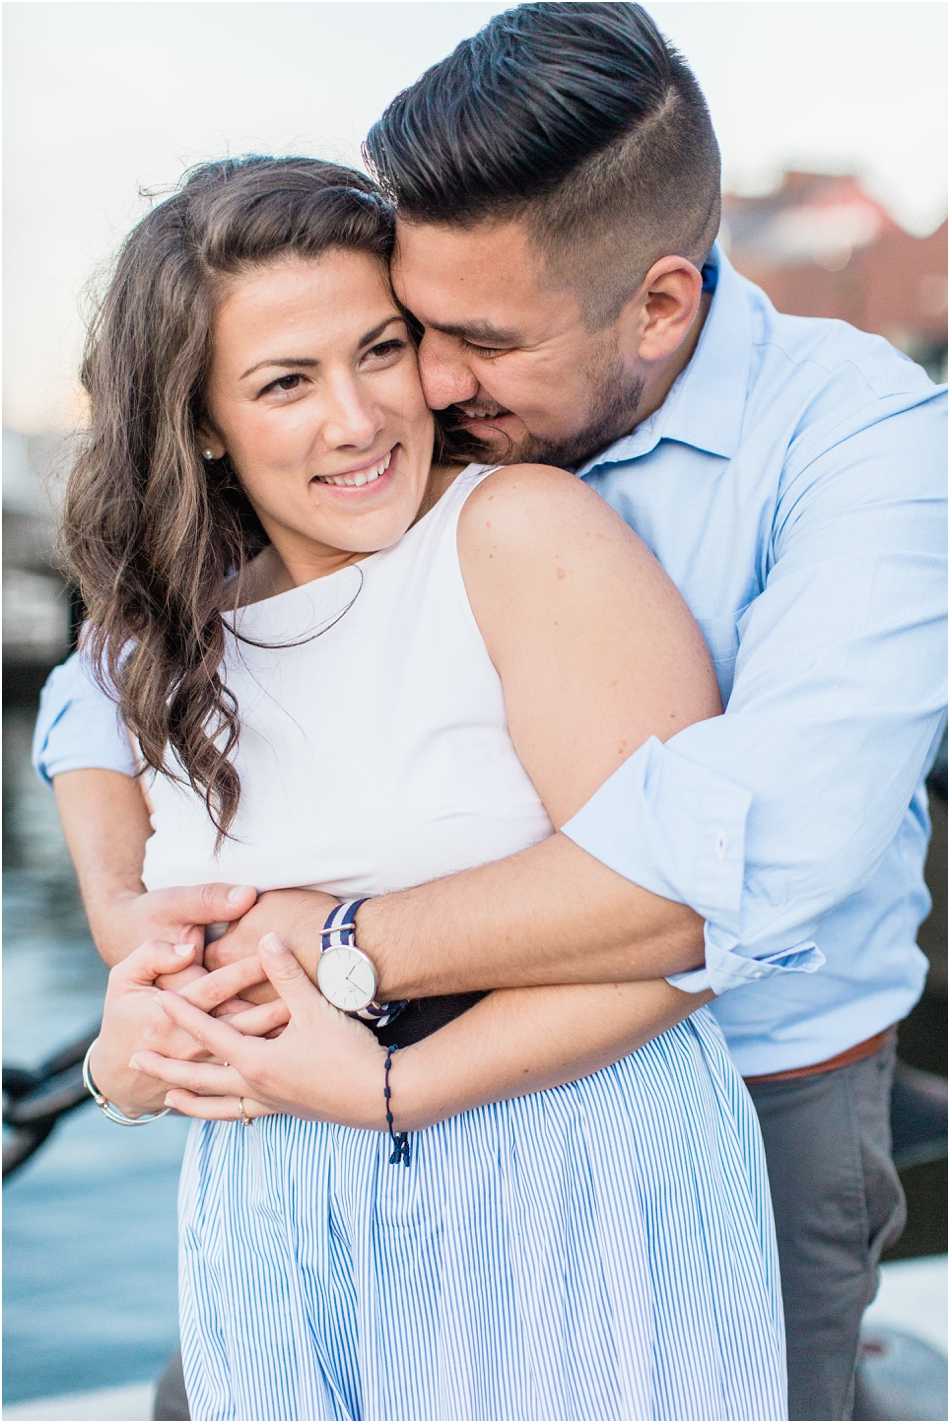 north_end_downtown_pizza_little_italy_engagement_boston_massachusetts_cape_cod_new_england_wedding_photographer_Meredith_Jane_Photography_photo_1751.jpg